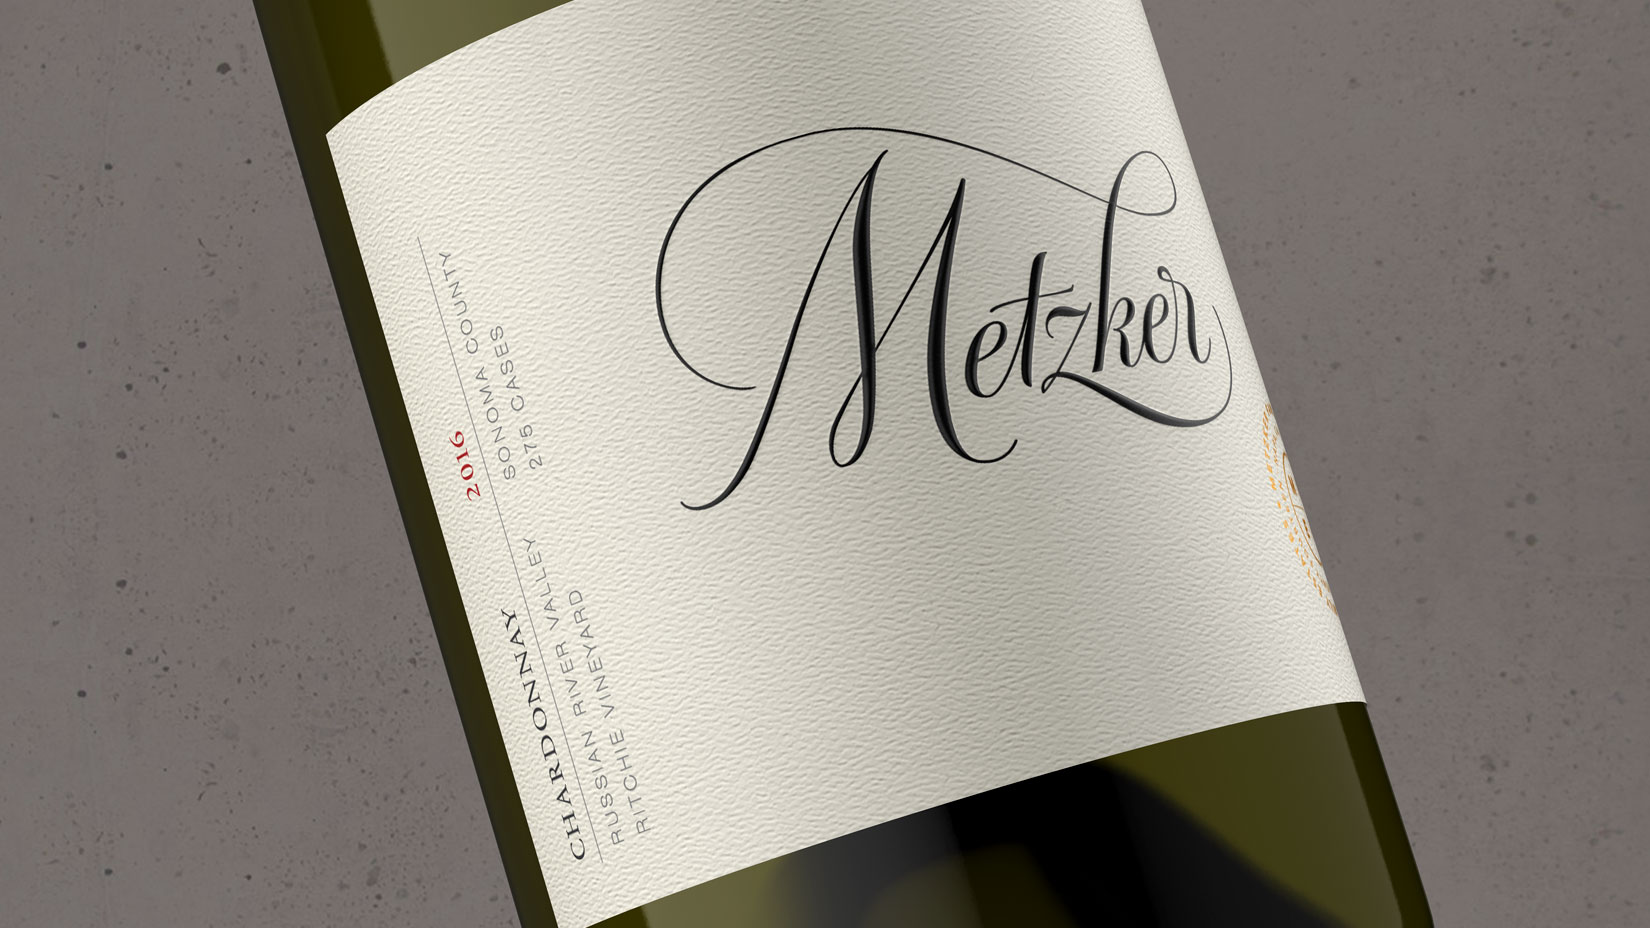 2016 Metzker Family Estates Chardonnay  Ritchie Vineyard - Metzker Family Estates Wines